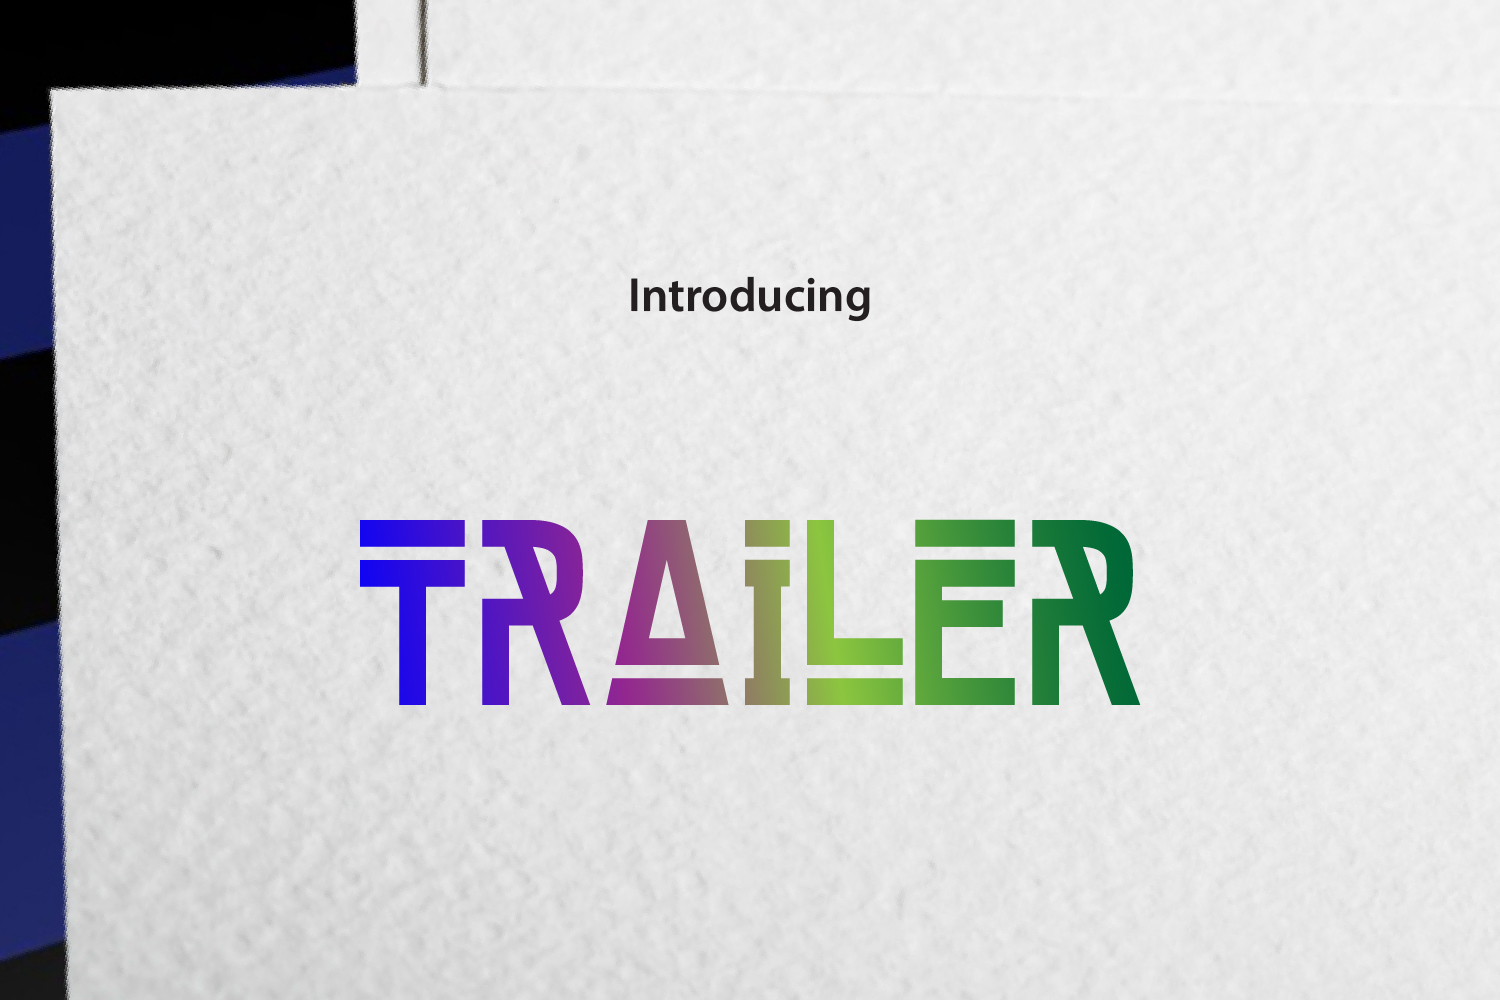 TRAILER example image 1